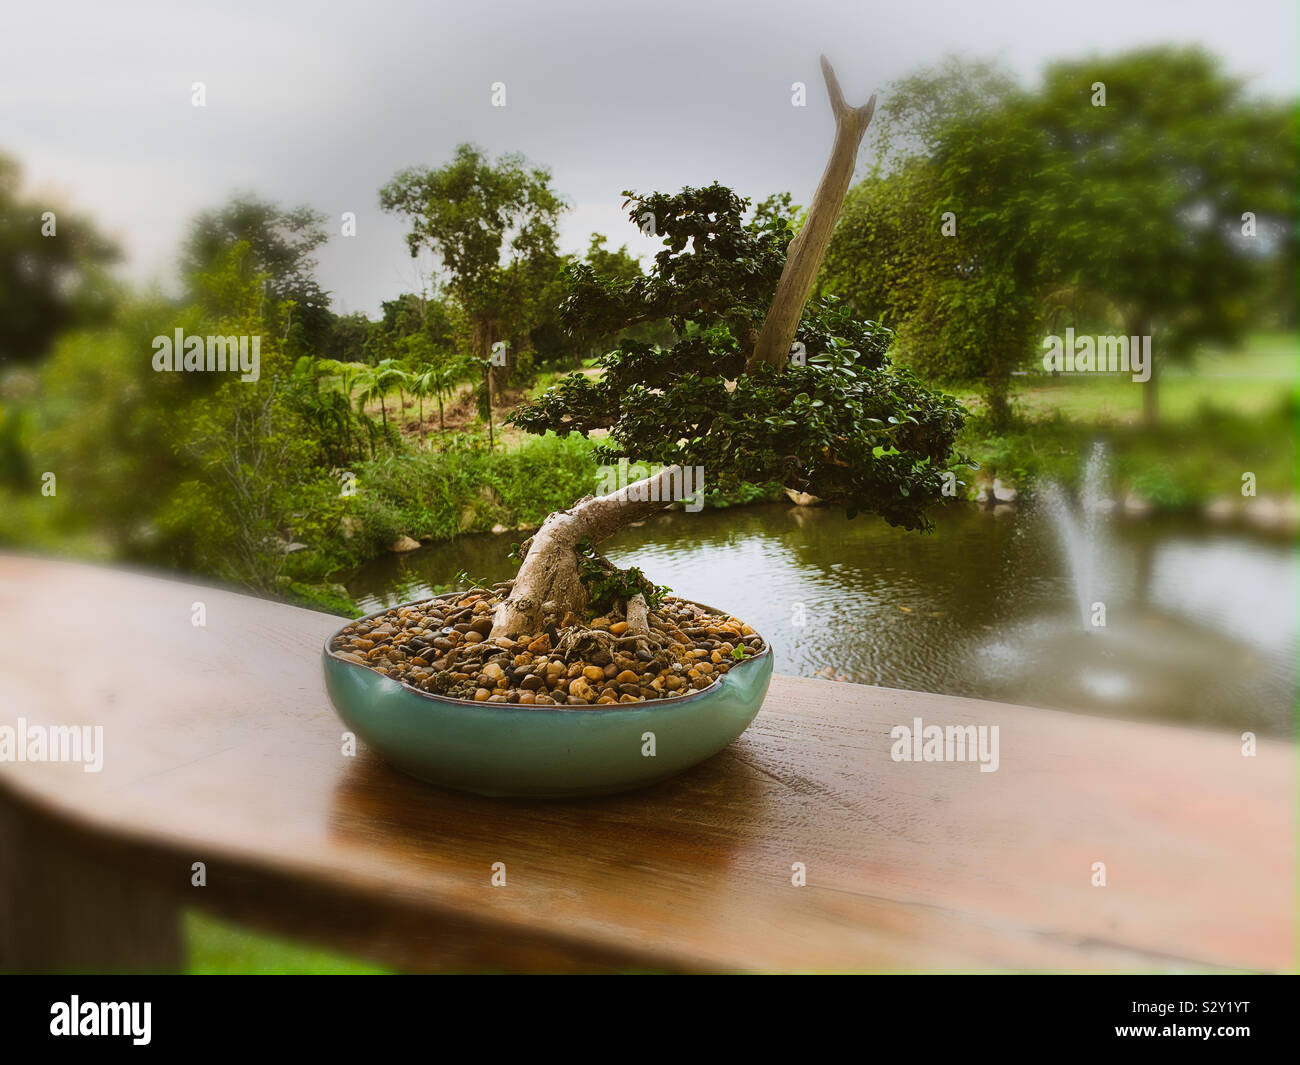 Bonsai Tree With A Fountain And Trees In The Background Stock Photo Alamy